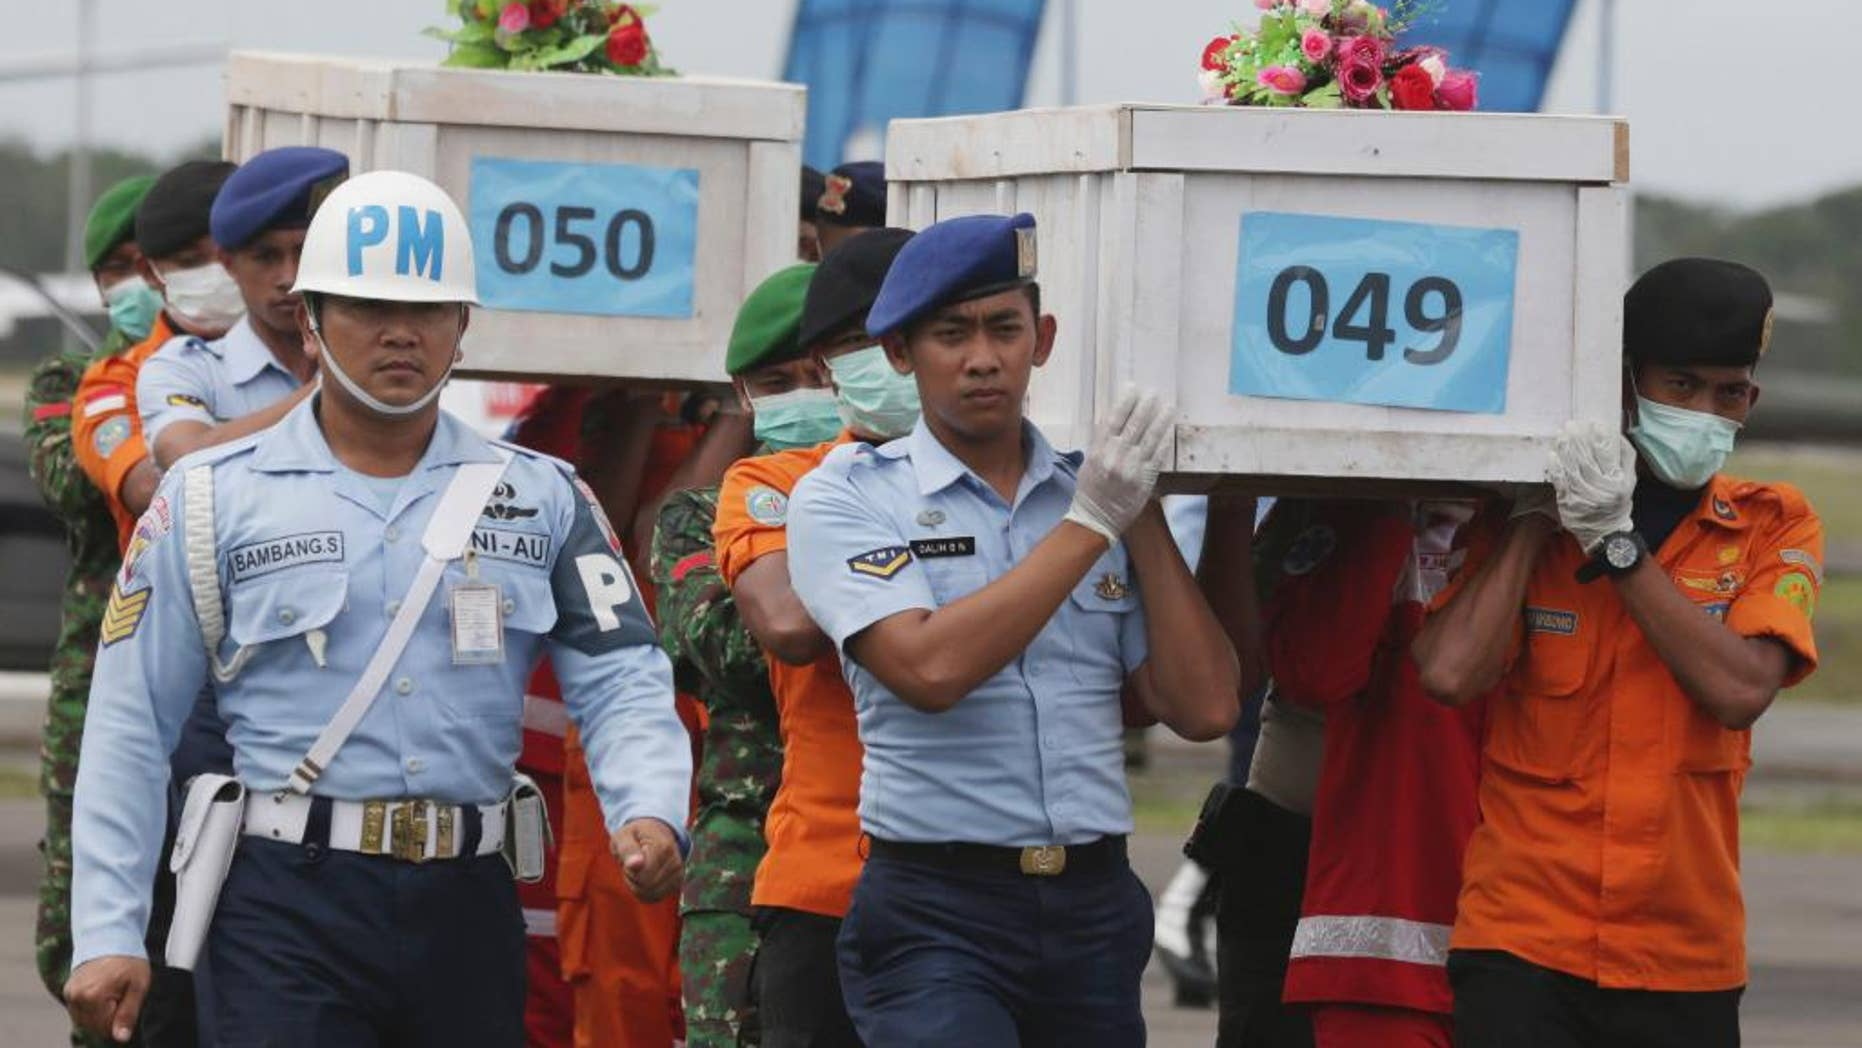 FILE - In this Monday, Jan. 19, 2015, file photo, members of the National Search and Rescue Agency carry coffins containing bodies of the victims aboard AirAsia Flight 8501 to transfer to Surabaya at the airport in Pangkalan Bun. The plane was climbing at an abnormally high rate, then plunged and suddenly disappeared from radar, Indonesia's transport minister said Tuesday, Jan. 20. (AP Photo/Achmad Ibrahim, File)